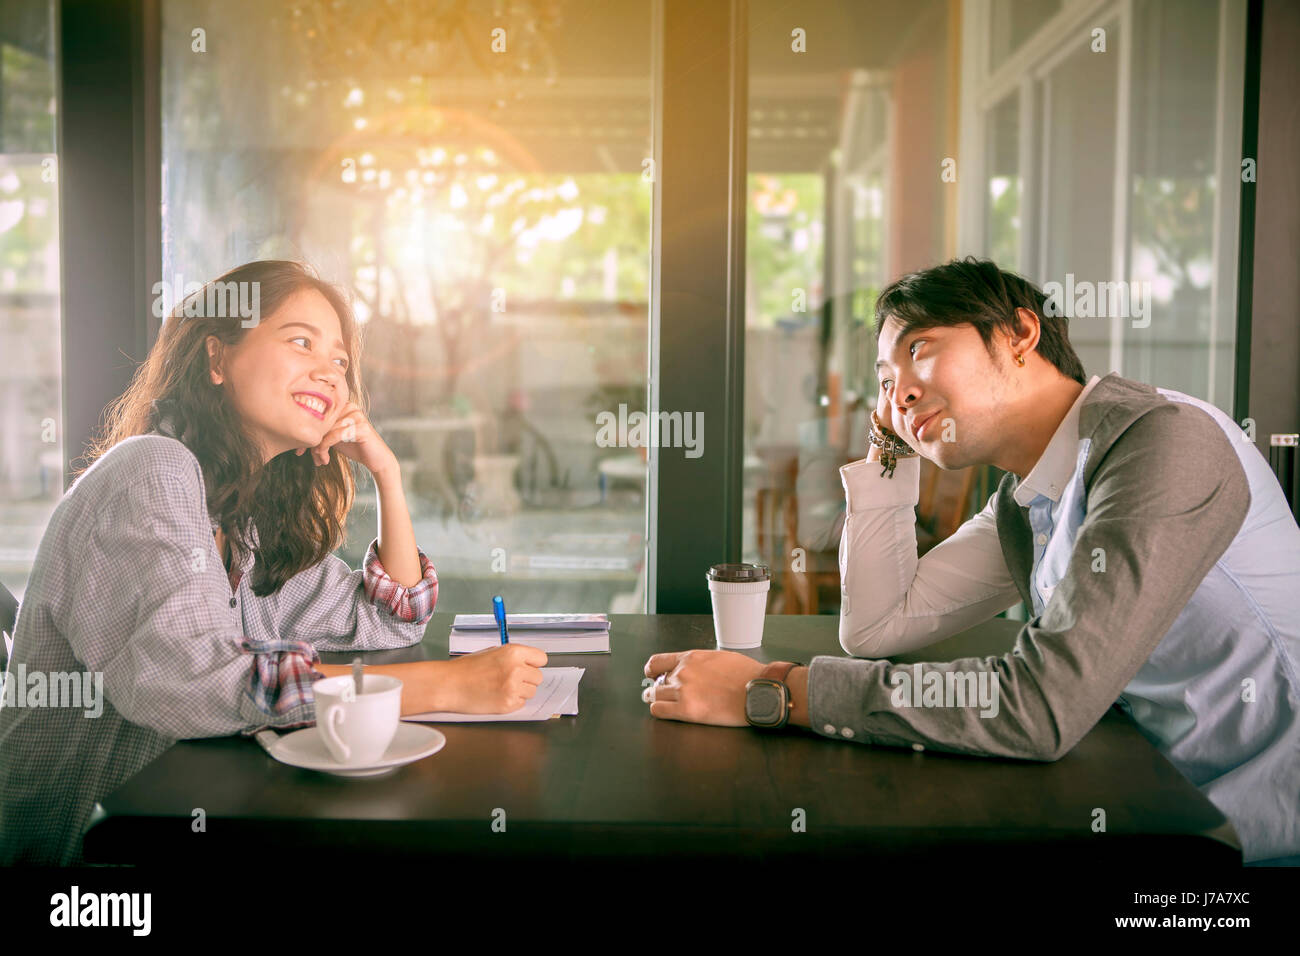 couples of younger asian man and woman relaxing with hot coffee drink in coffee shop  happiness feeling - Stock Image